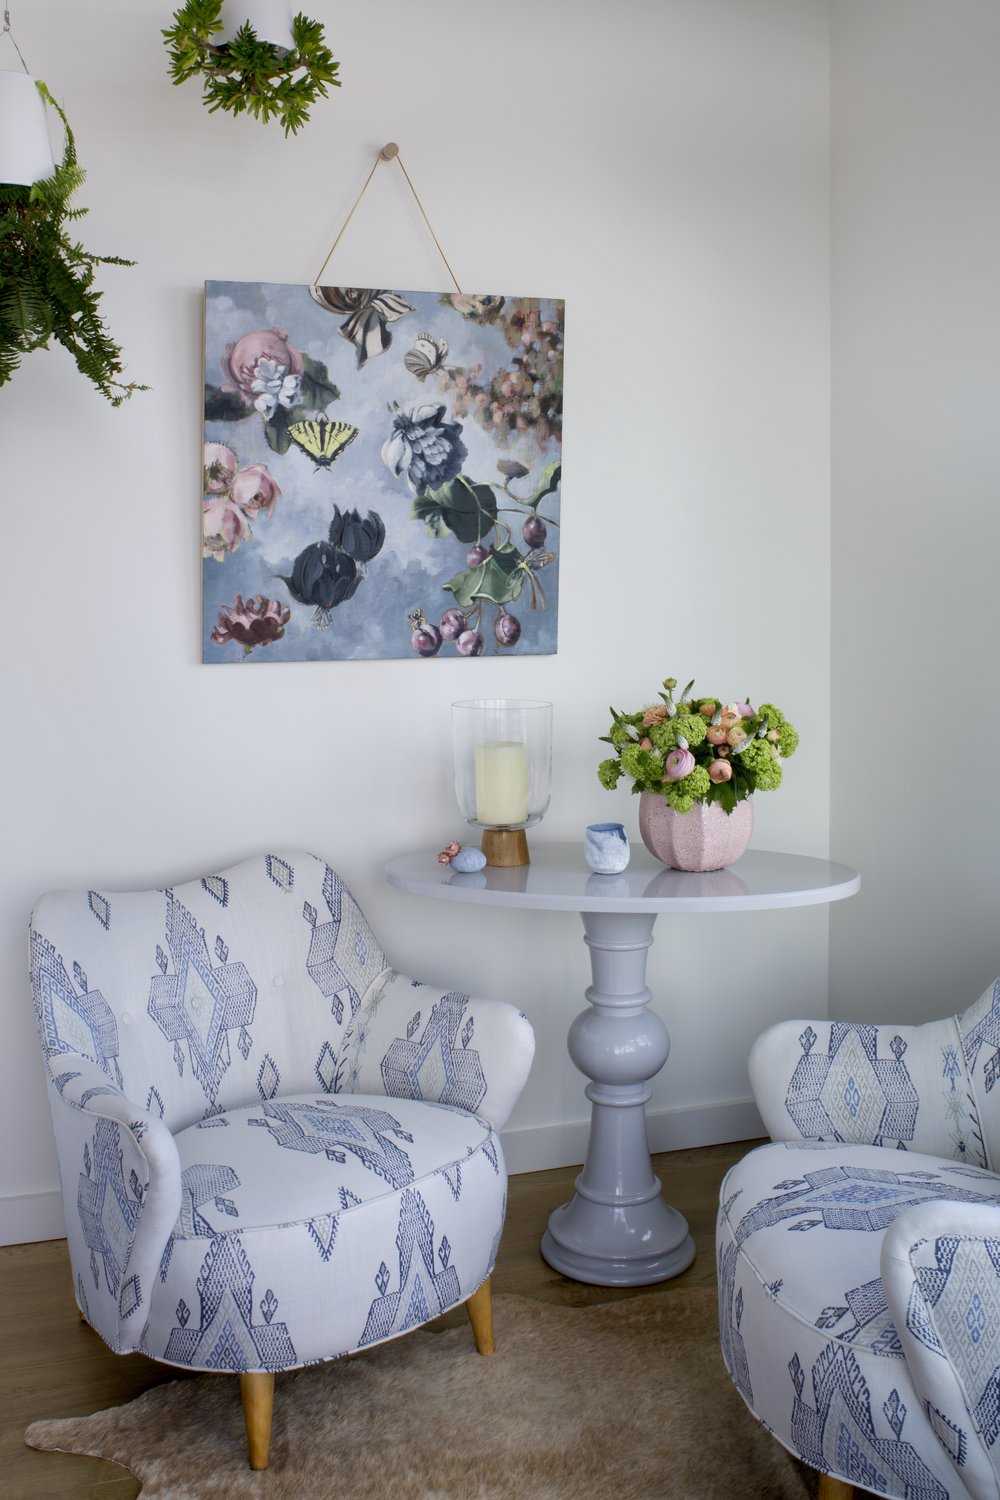 Art Lover's Atelier by Lotus Bleu Design